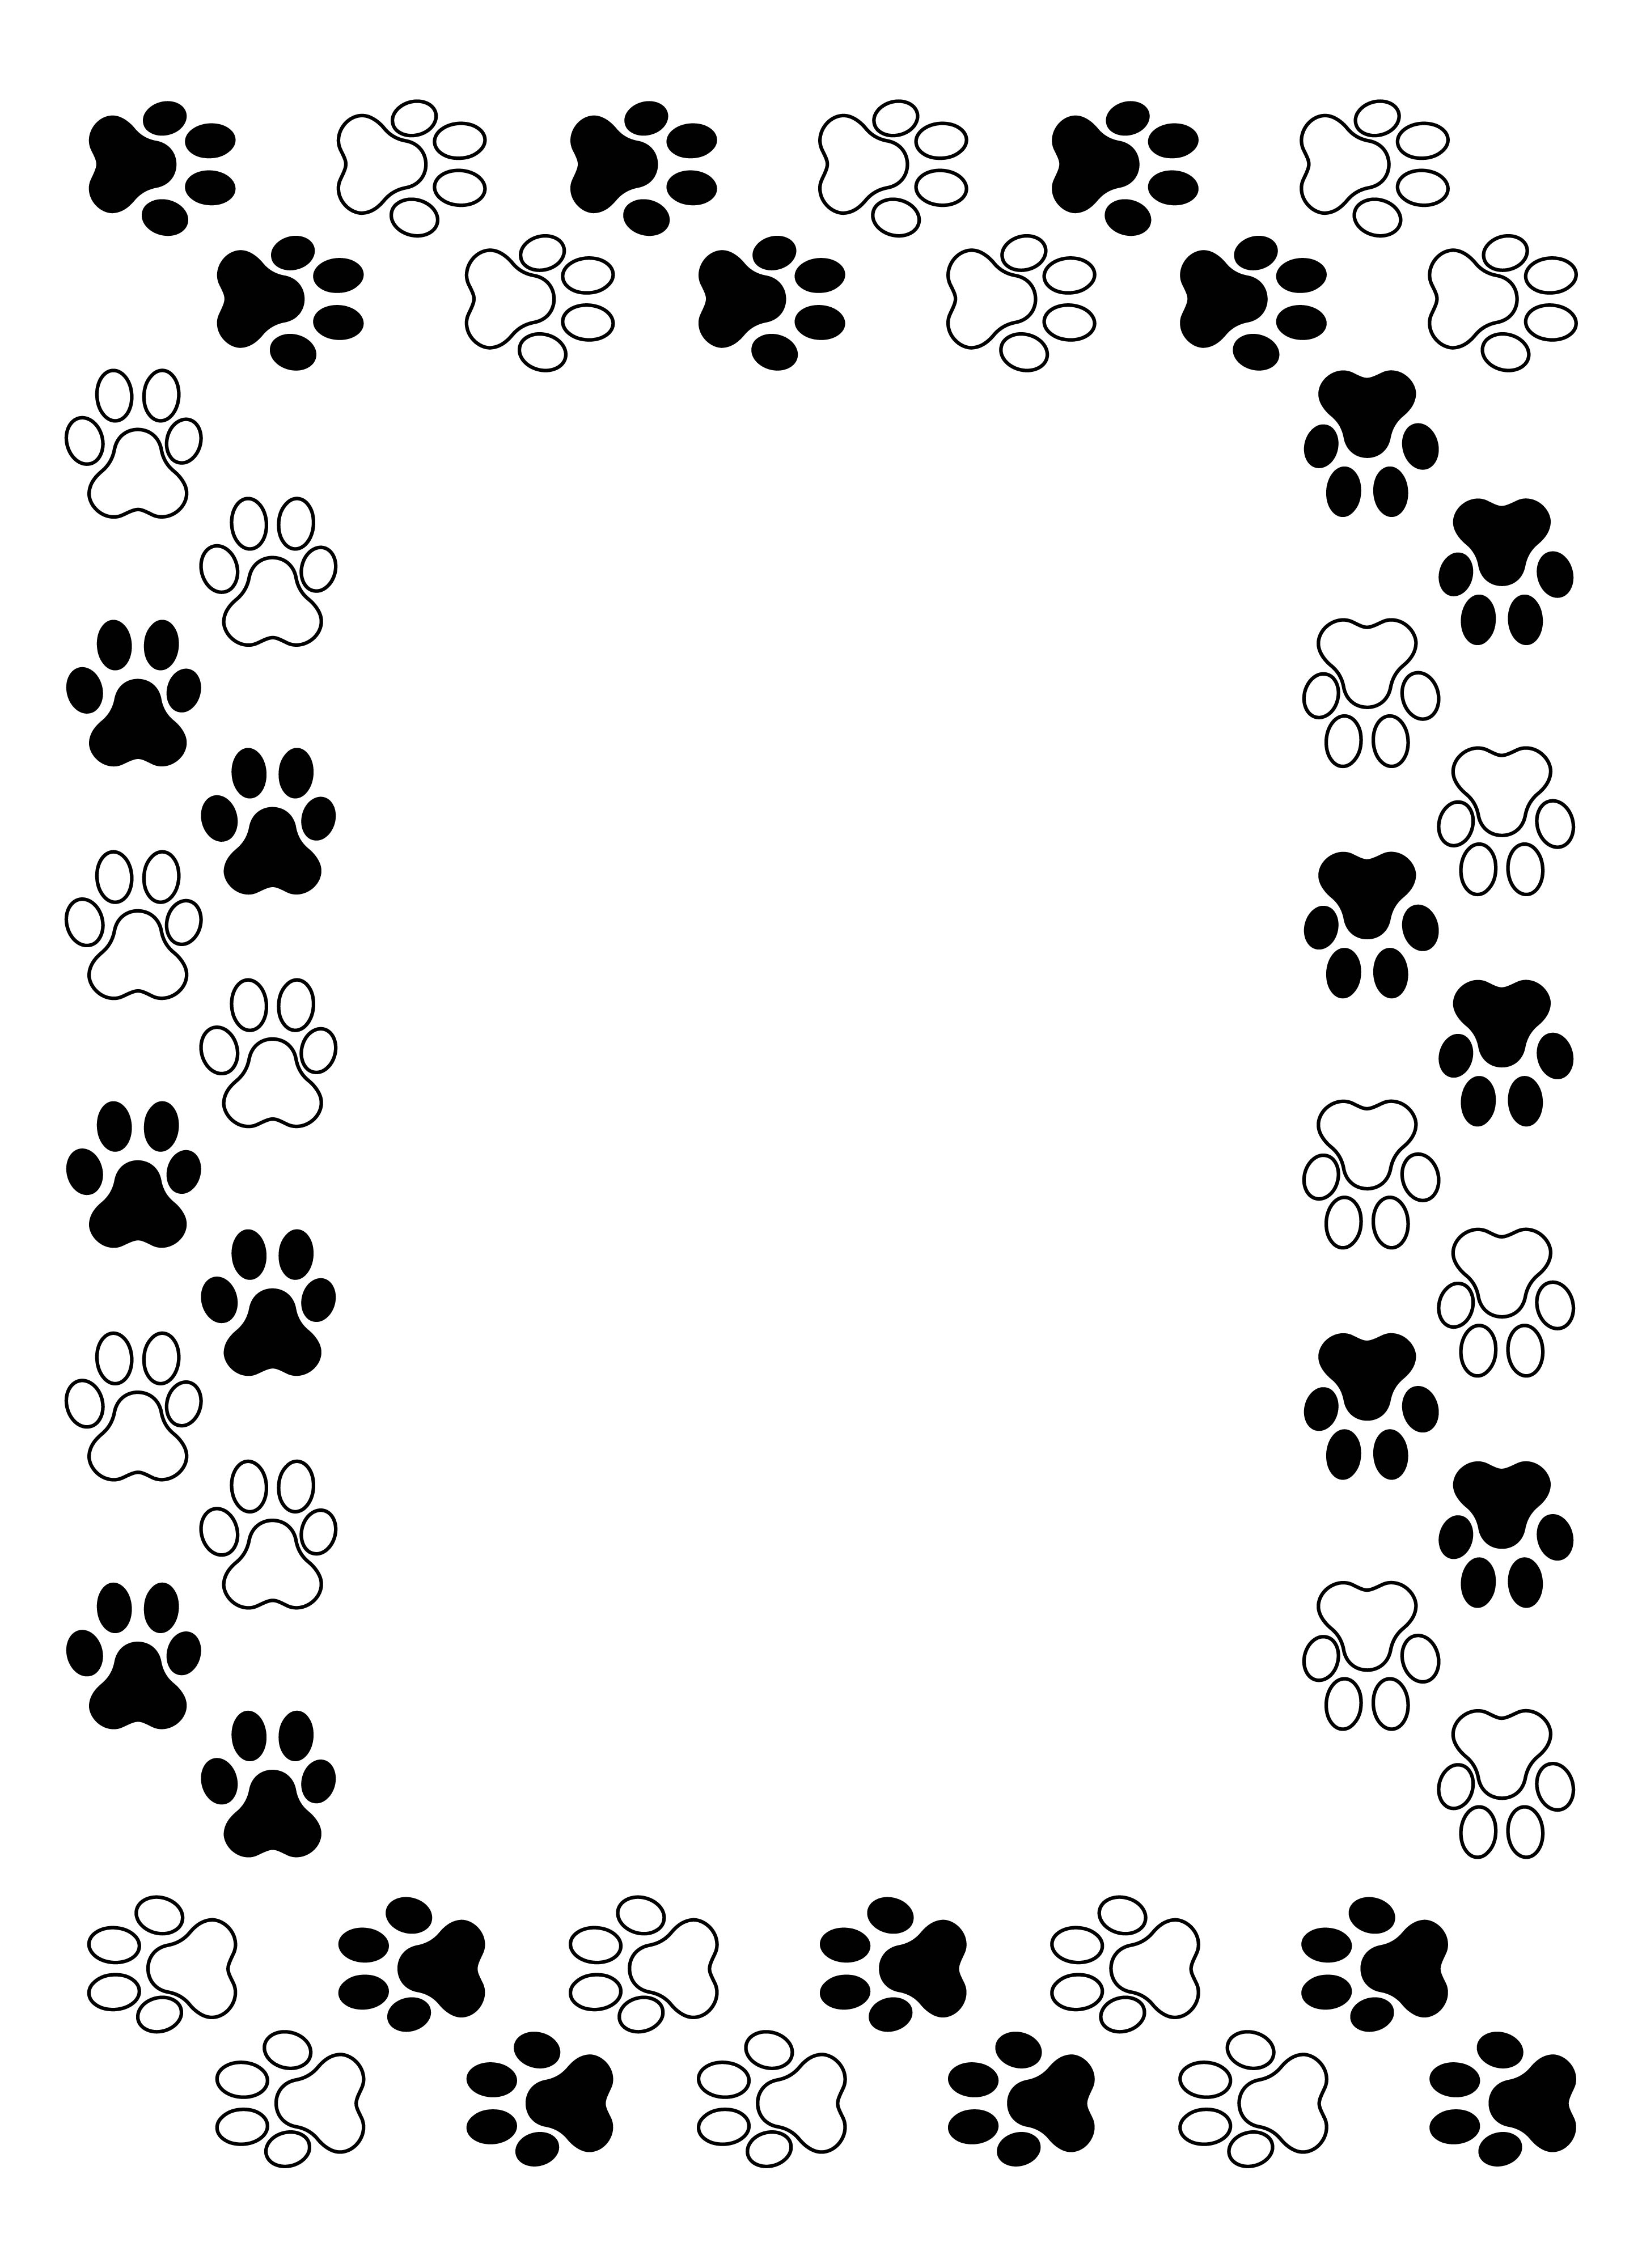 7 Best Images of Dog Free Printable Lined Writing Paper